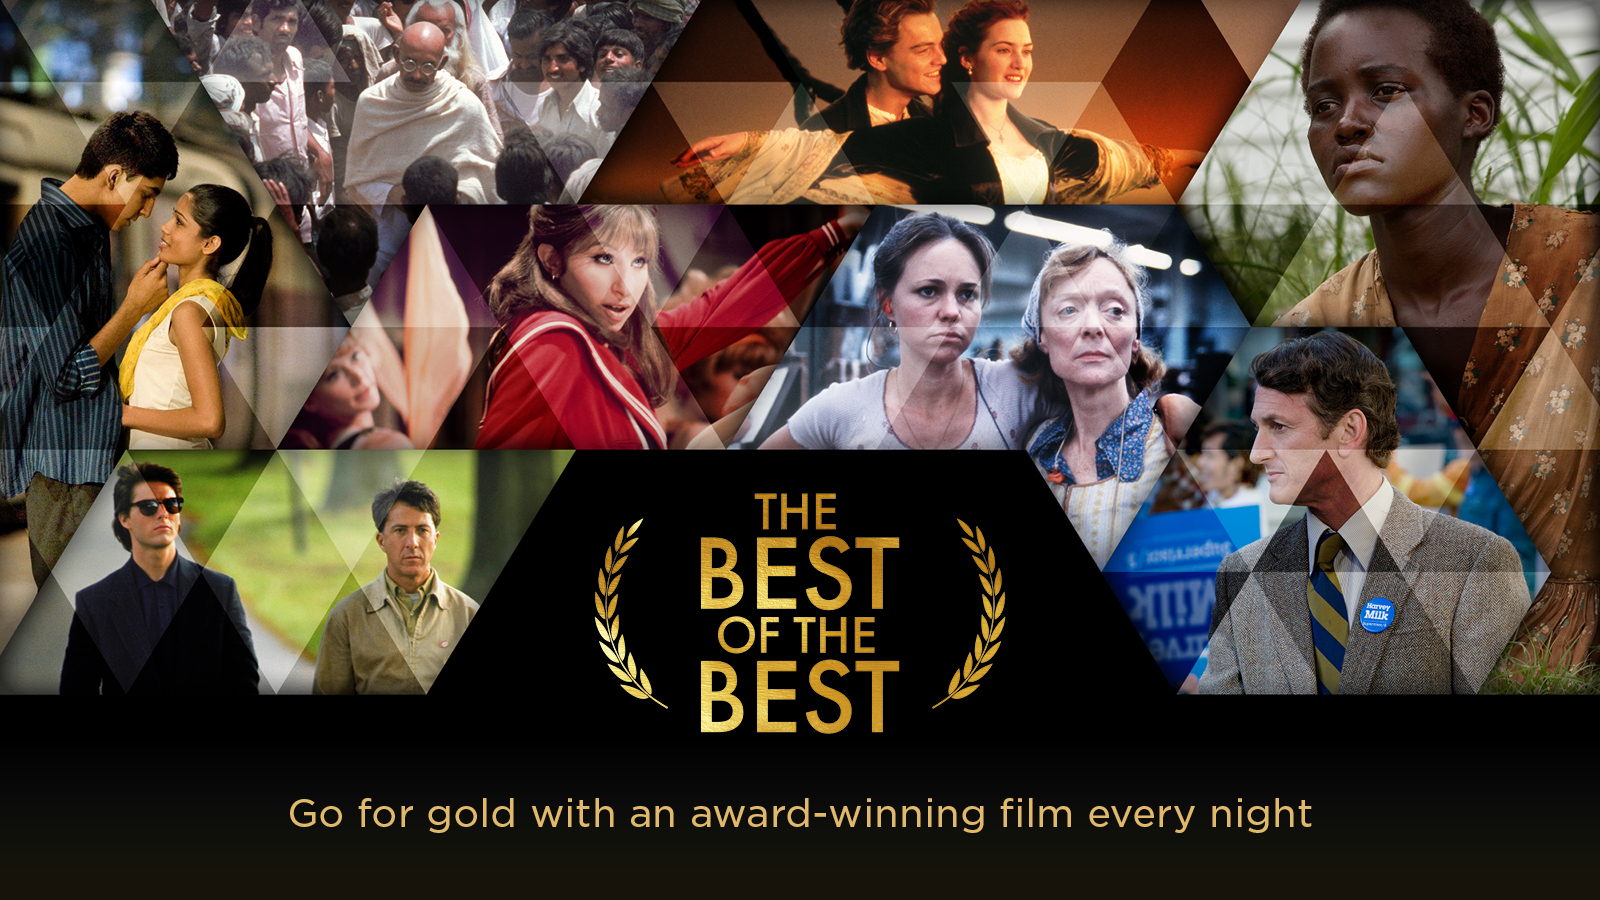 The Best of the Best – Go for gold with an award-winning film every night